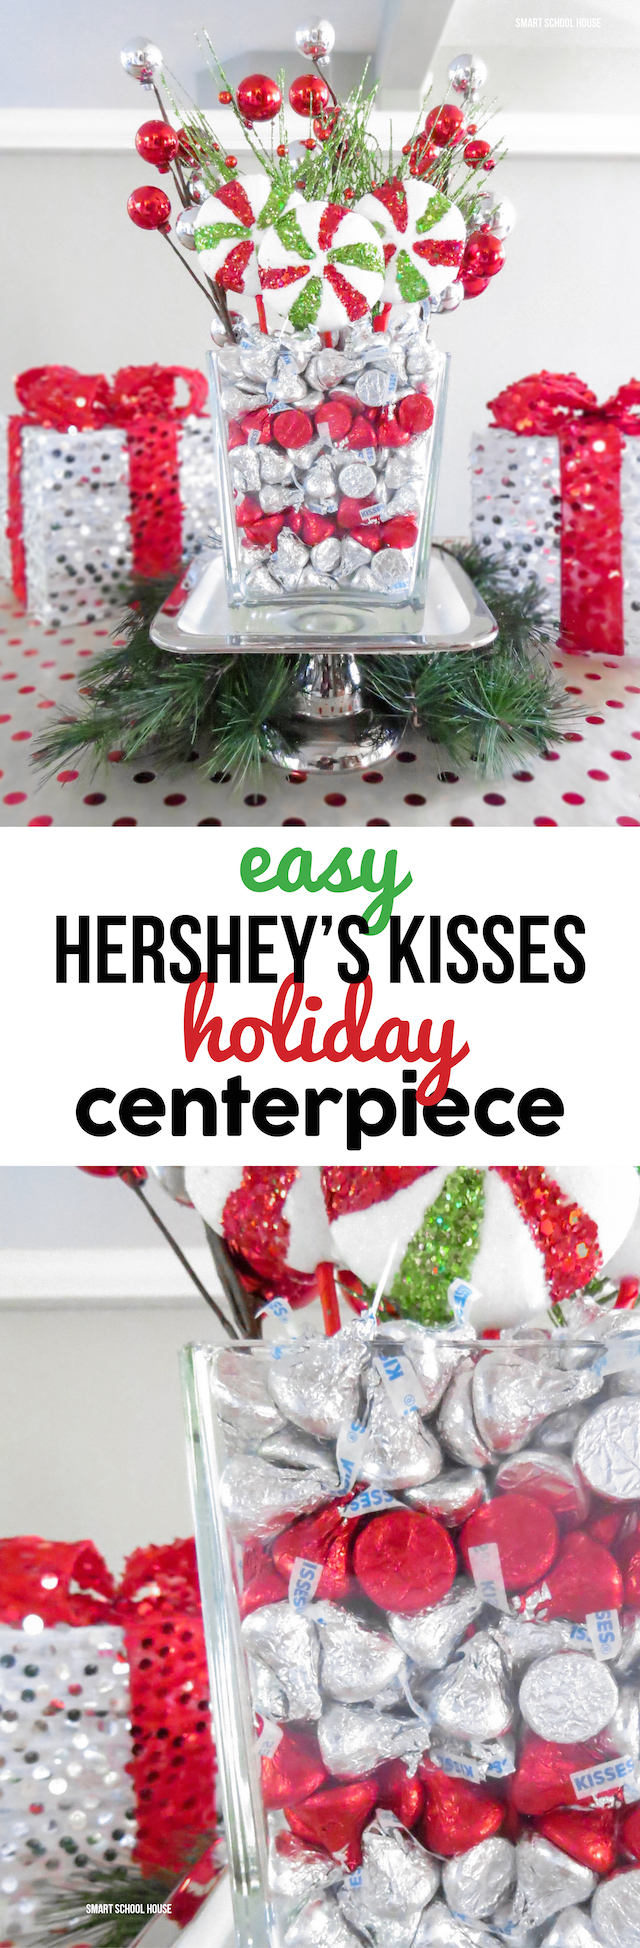 Hershey's Kisses Holiday Centerpiece